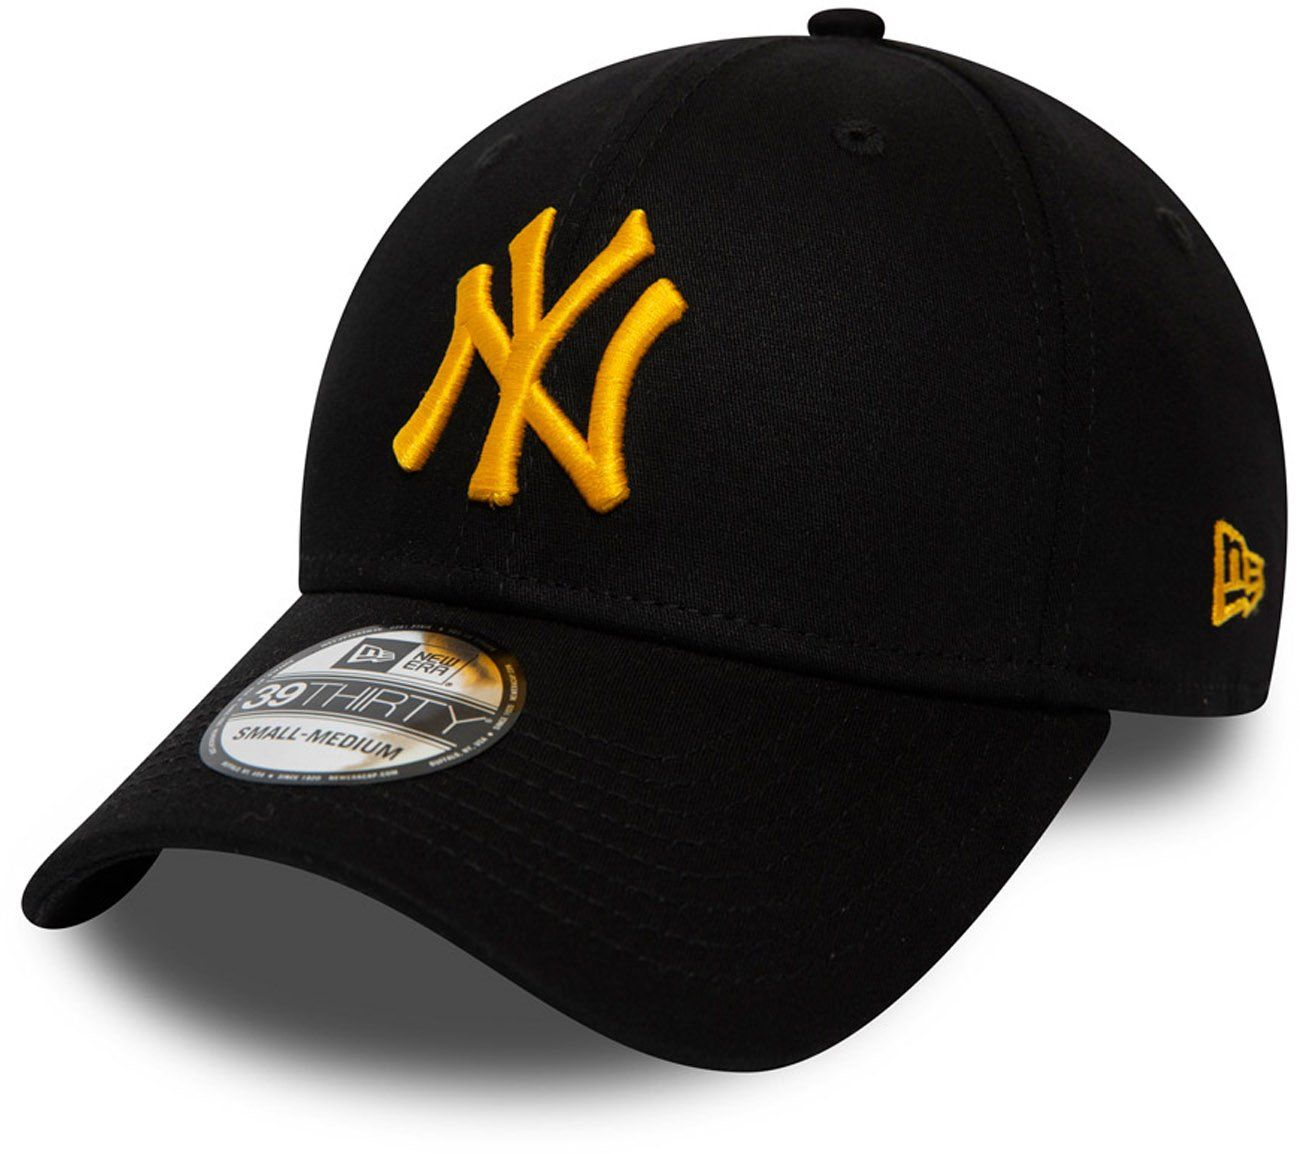 Ny Yankees New Era 3930 League Essential Black Gold Stretch Fit Baseball Cap Fitted Baseball Caps Ny Yankees Yankees Baseball Cap